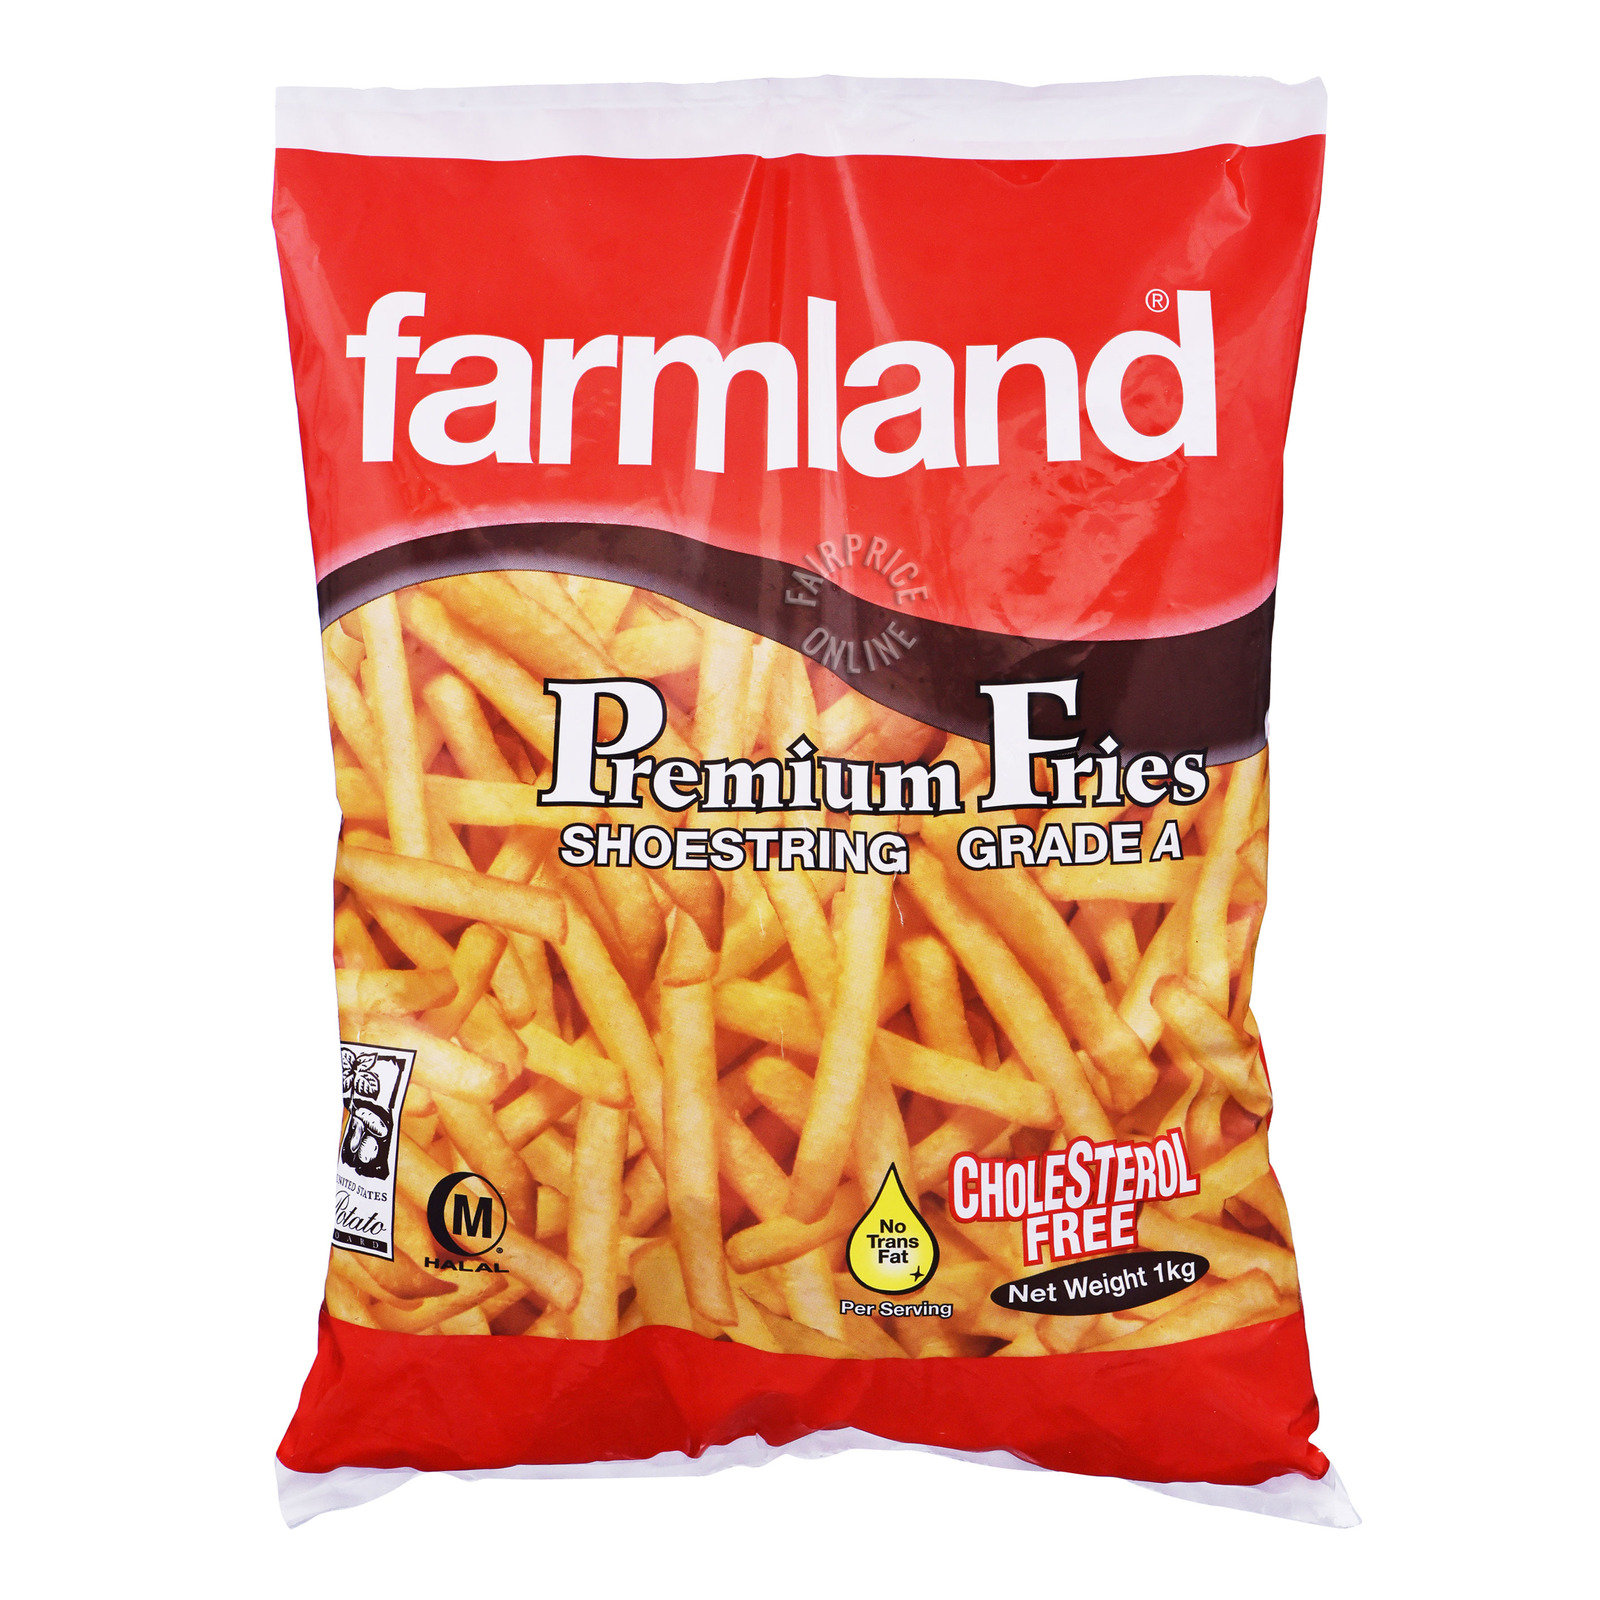 Farmland Frozen Premium Fries - Shoestring